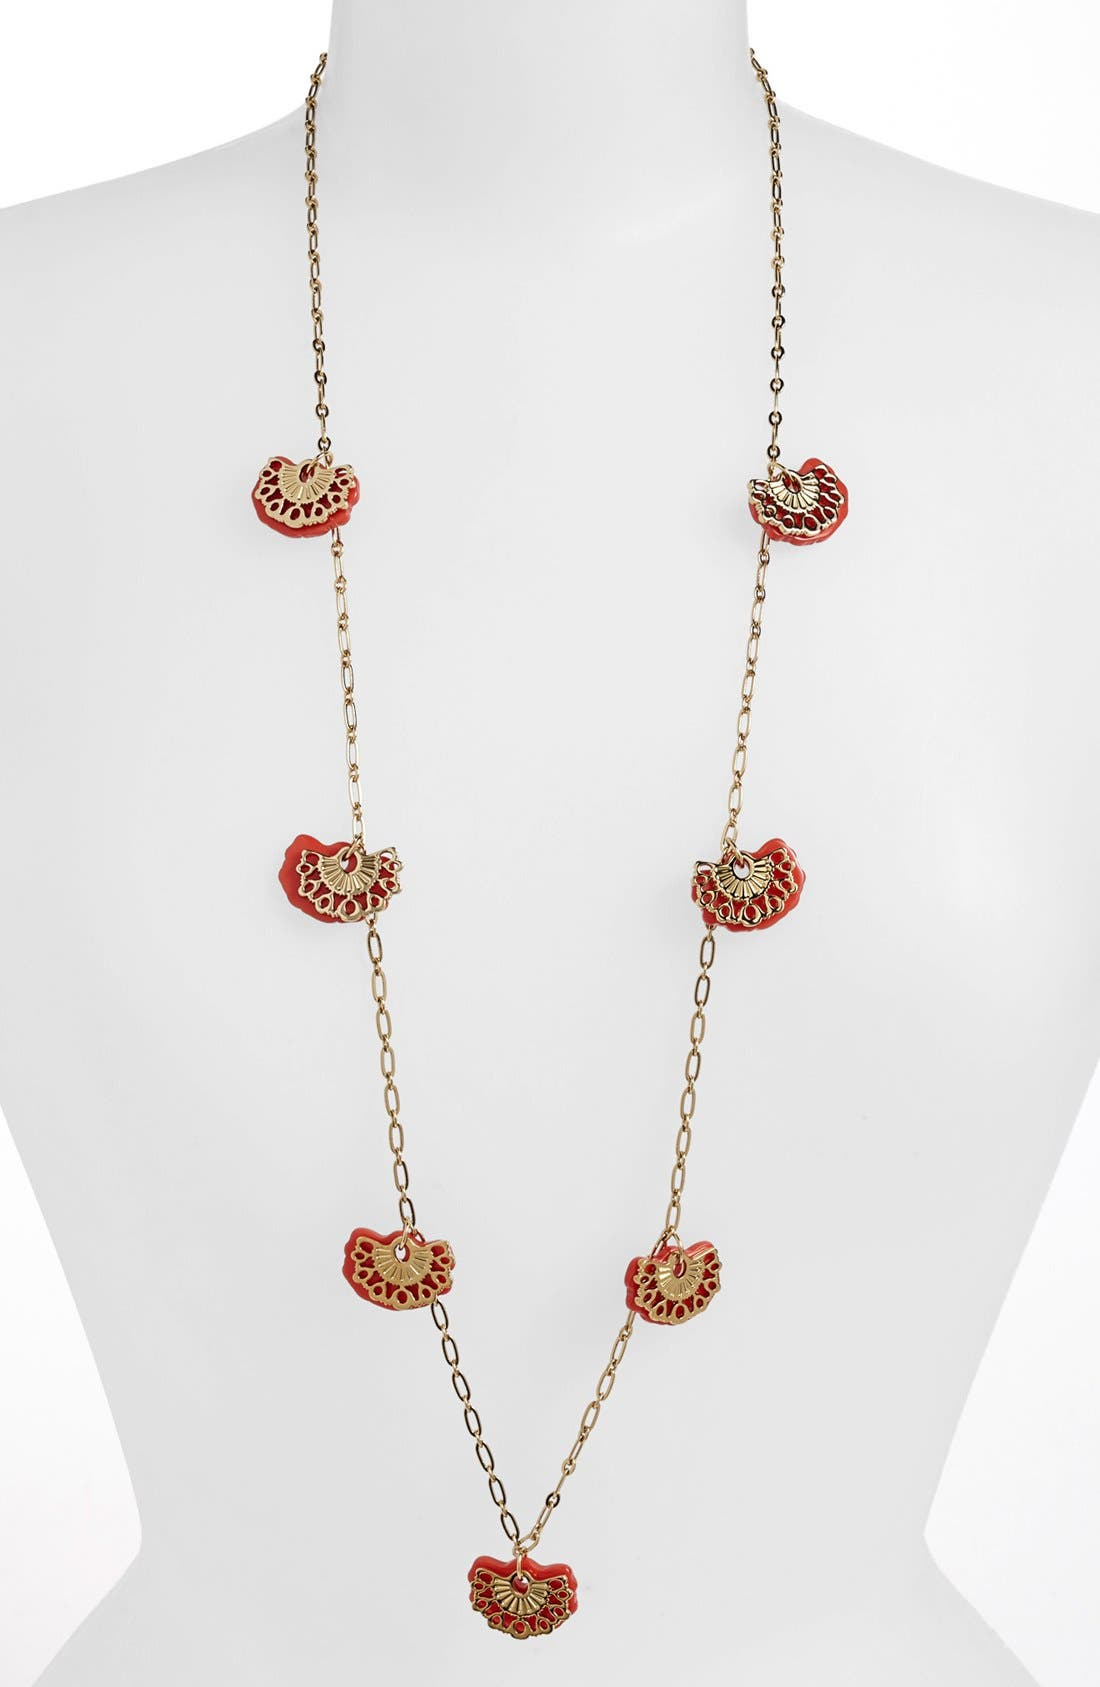 Alternate Image 1 Selected - Tory Burch 'Madura' Long Charm Necklace